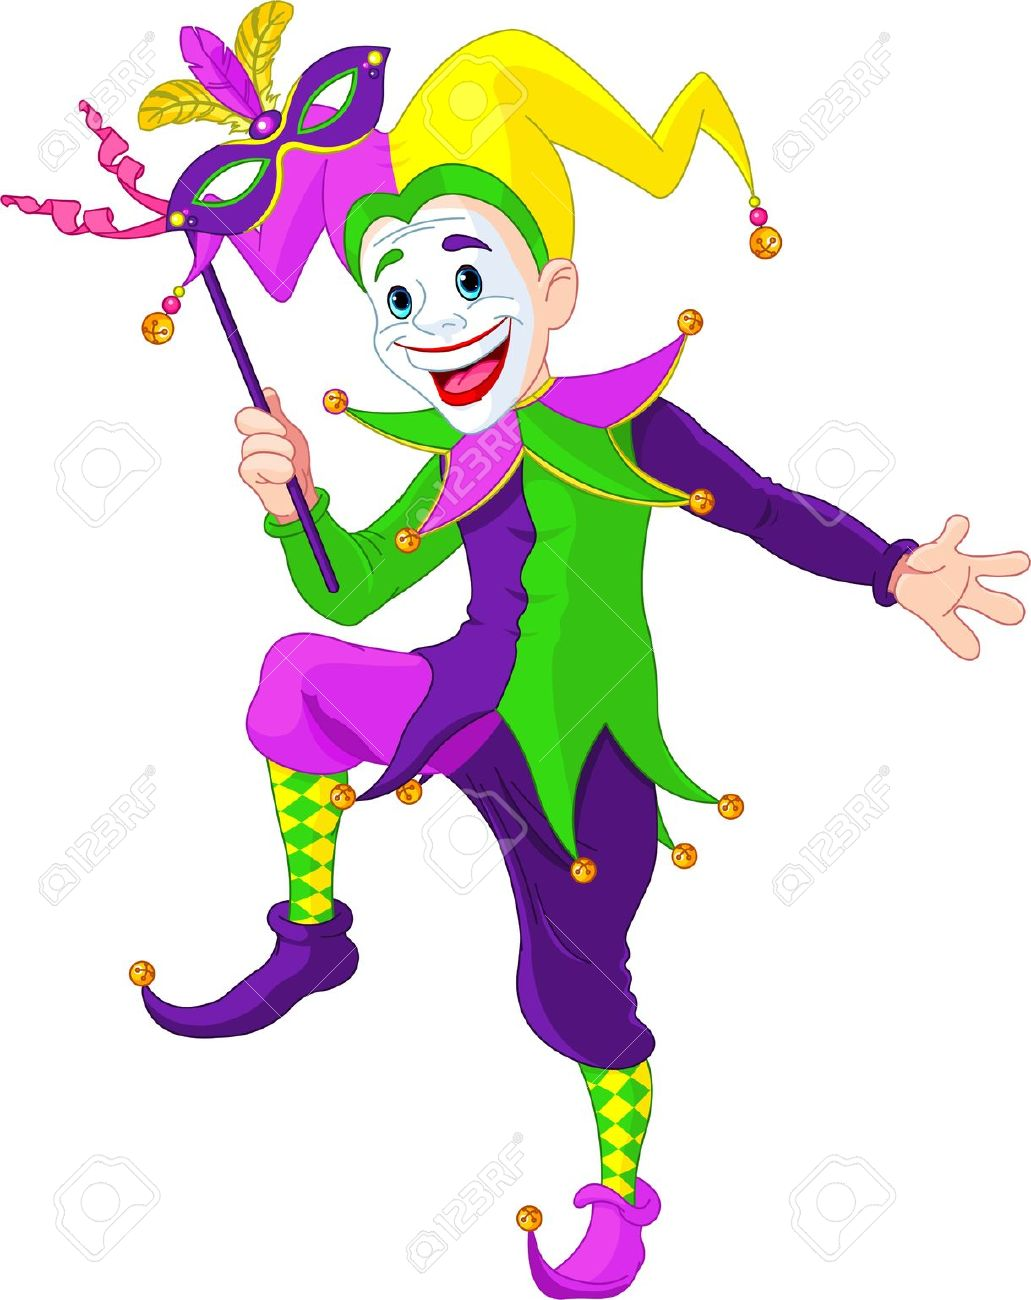 1031x1300 Clown Clipart, Suggestions For Clown Clipart, Download Clown Clipart